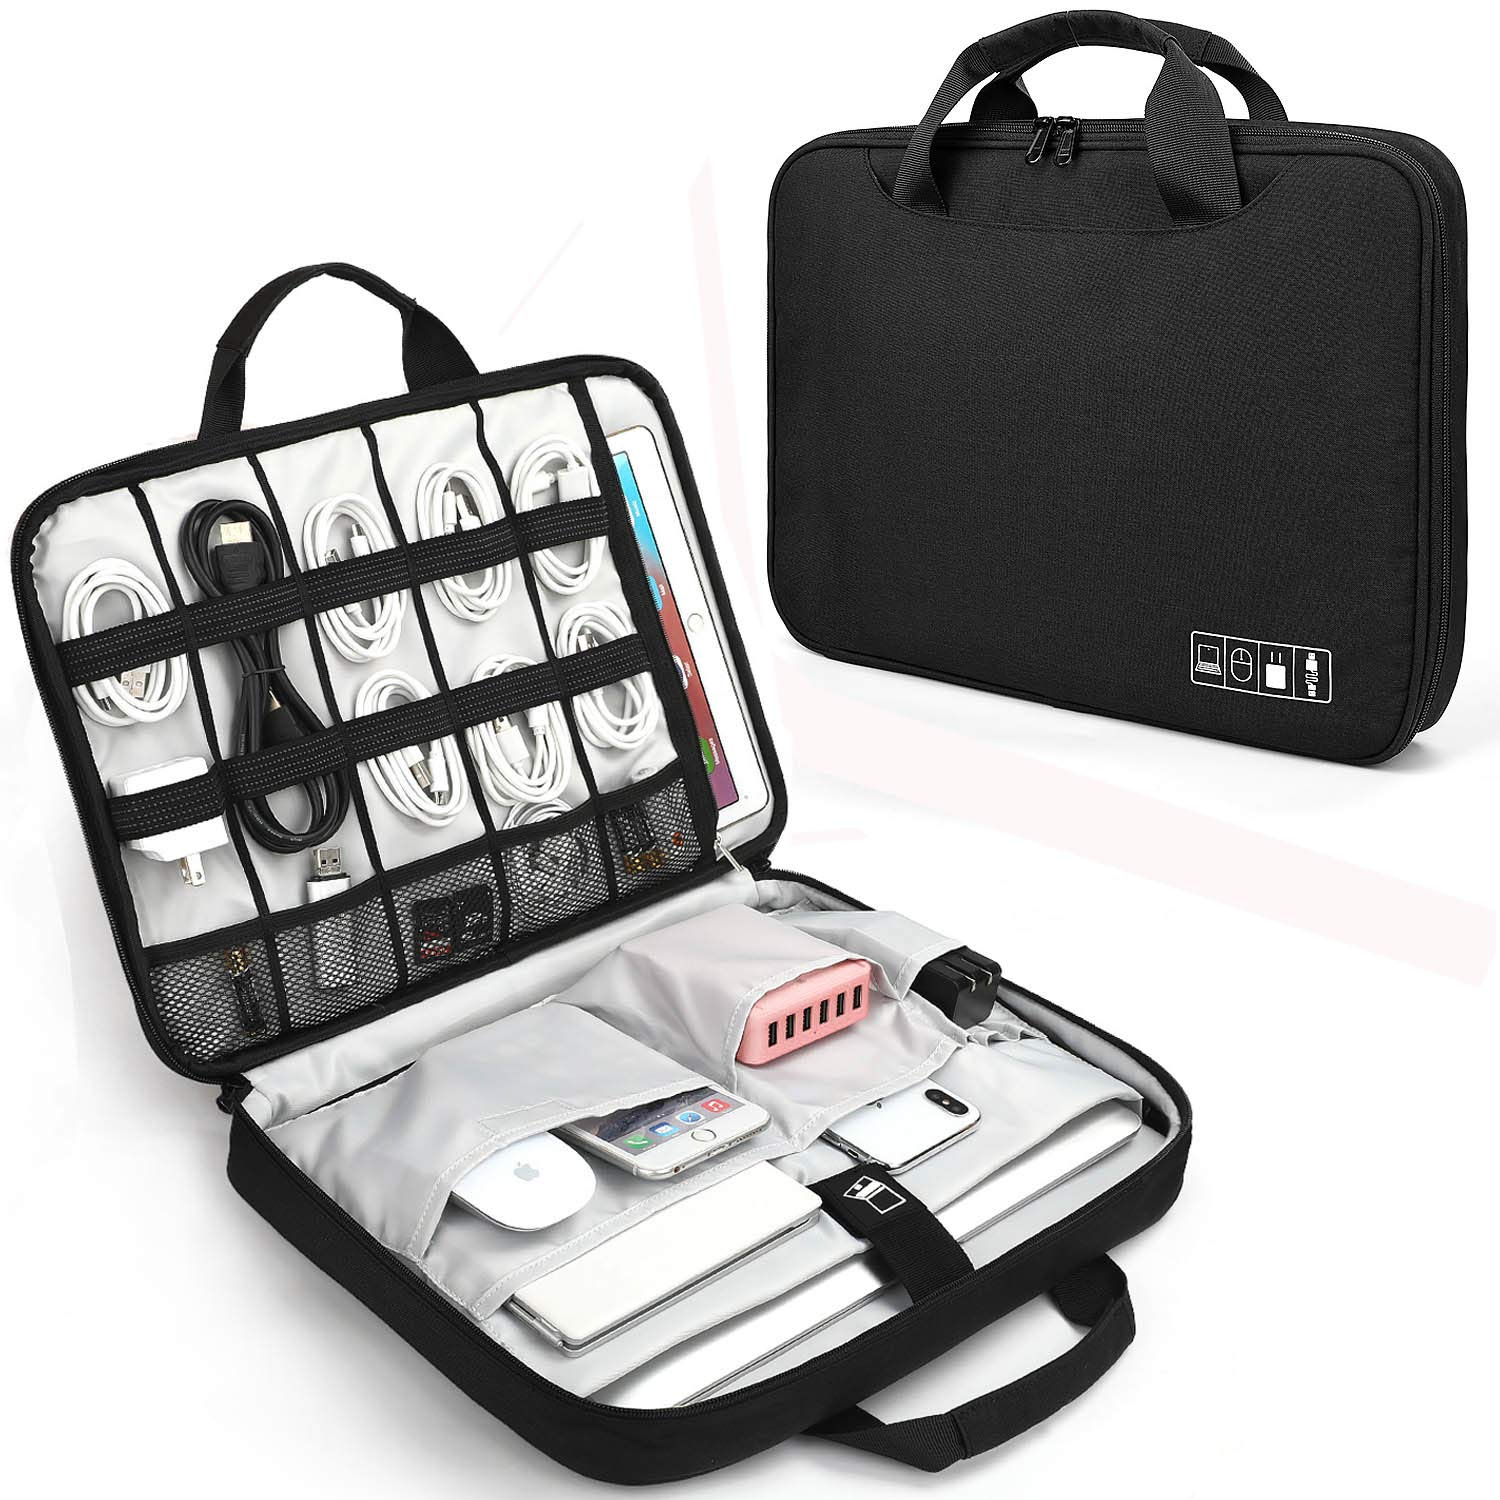 Electronics Organizer, Jelly Comb Laptop Sleeve Electronic Accessories Travel Gadgets Carry Case for 13-14in Laptop, New MacBook, iPad 12.9'', Cables, Power Bank and More (Black and Gray)